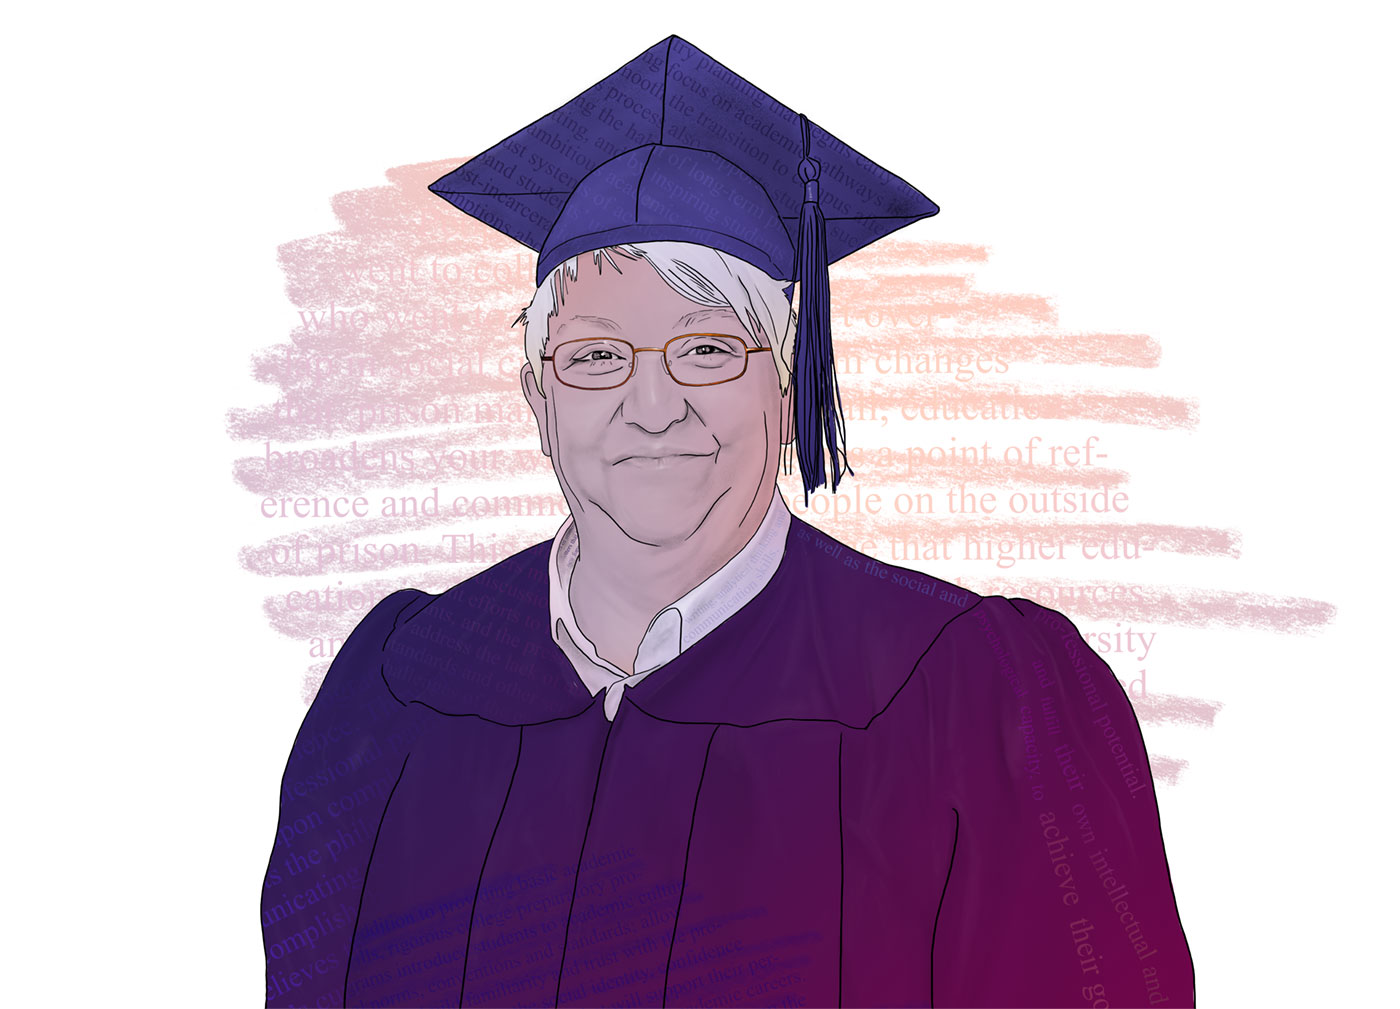 A colorful illustration depicts a mature woman in a cap and gown with text surrounding her